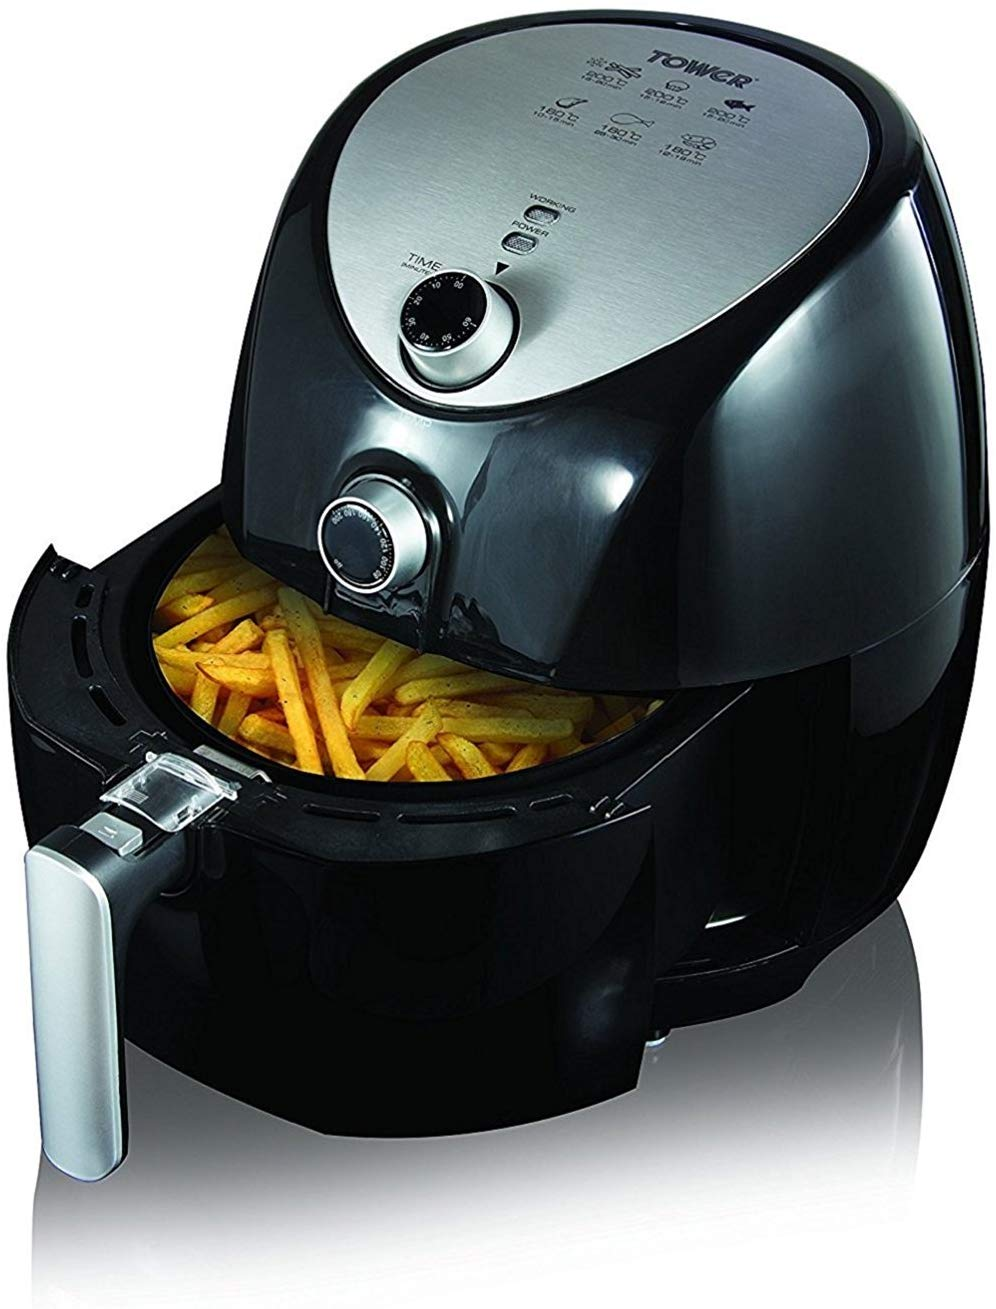 59% OFF Tower Air Fryer with Rapid Air Circulation System, 1500 W, 4.3 Litre